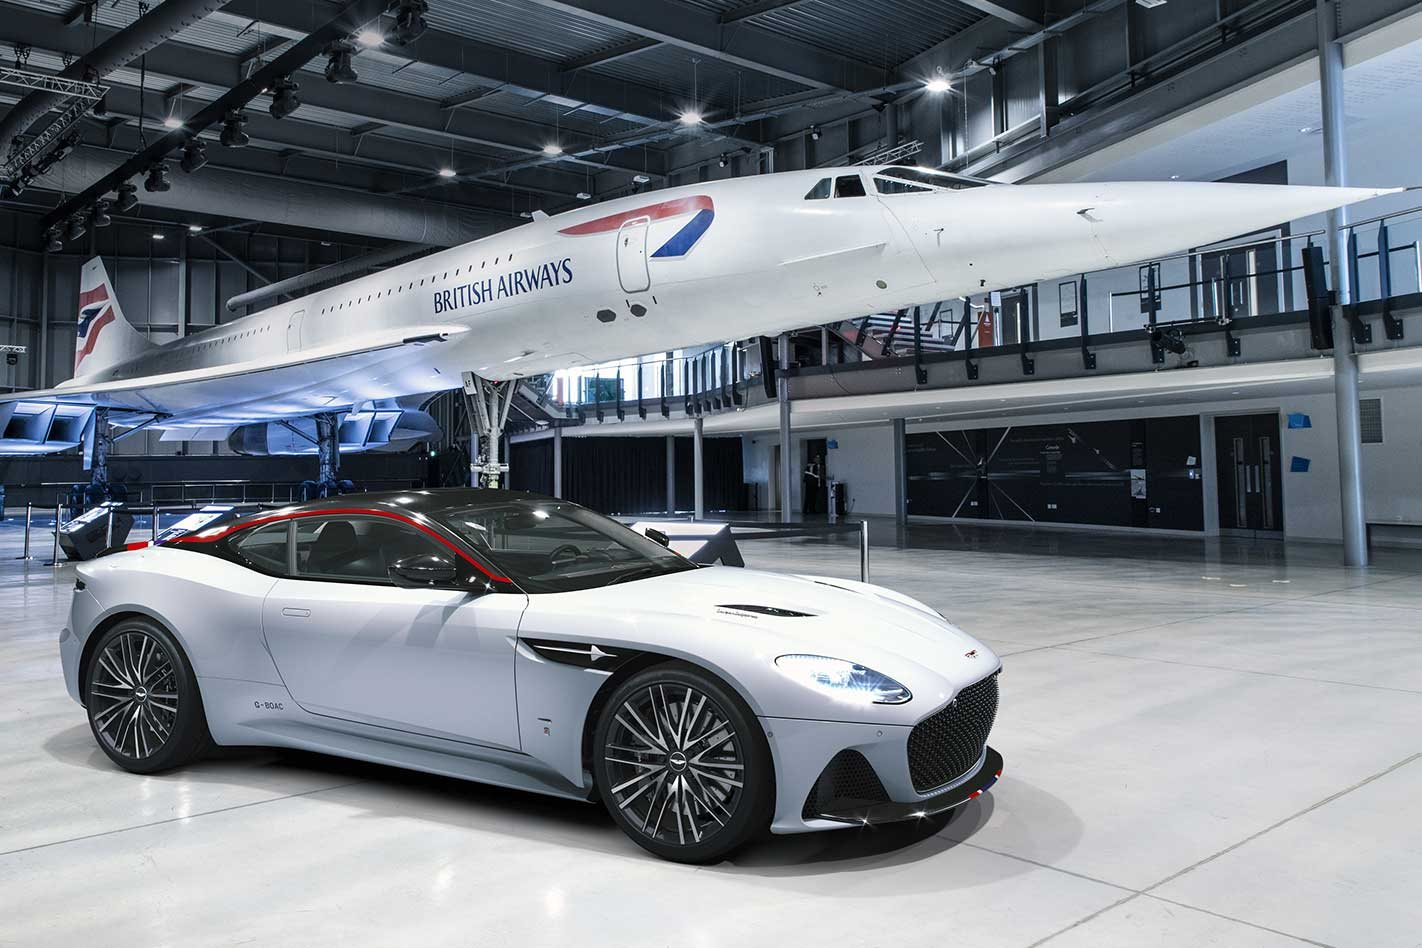 Super-rare Aston Martin DBS Superleggera Concorde unveiled